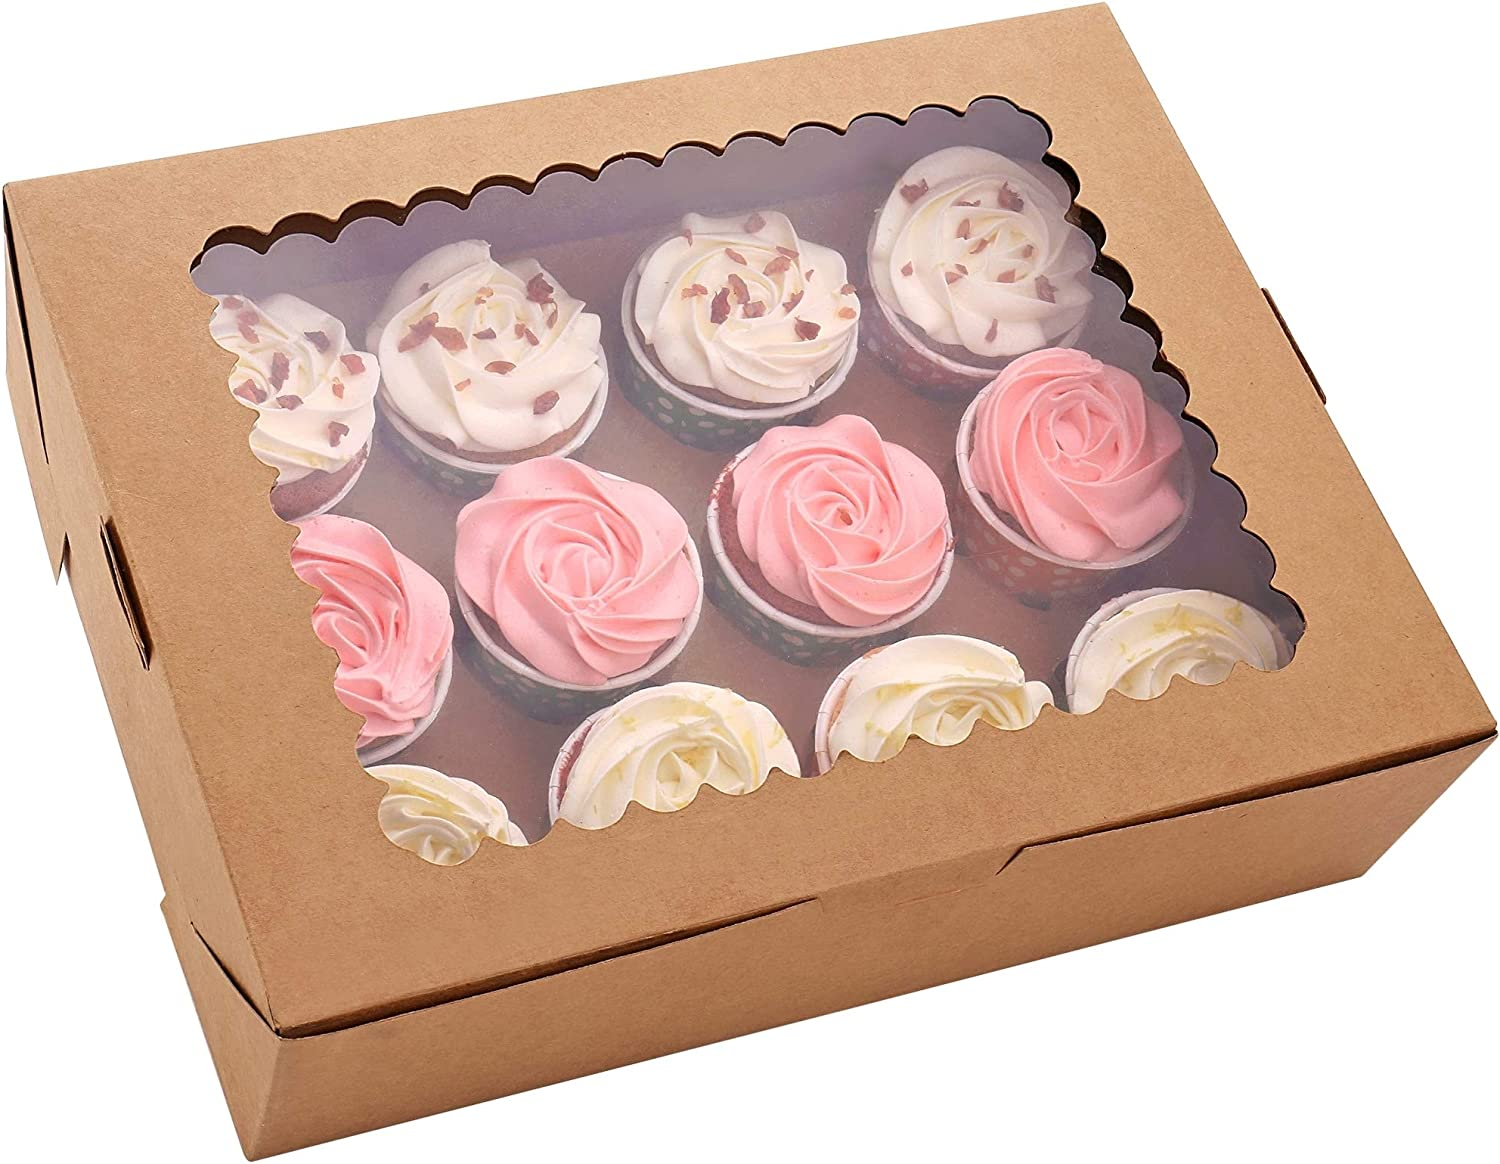 5% OFF 6-Set Cupcake Boxes Hold 12 Con Standard Brown Cupcakes trend rank